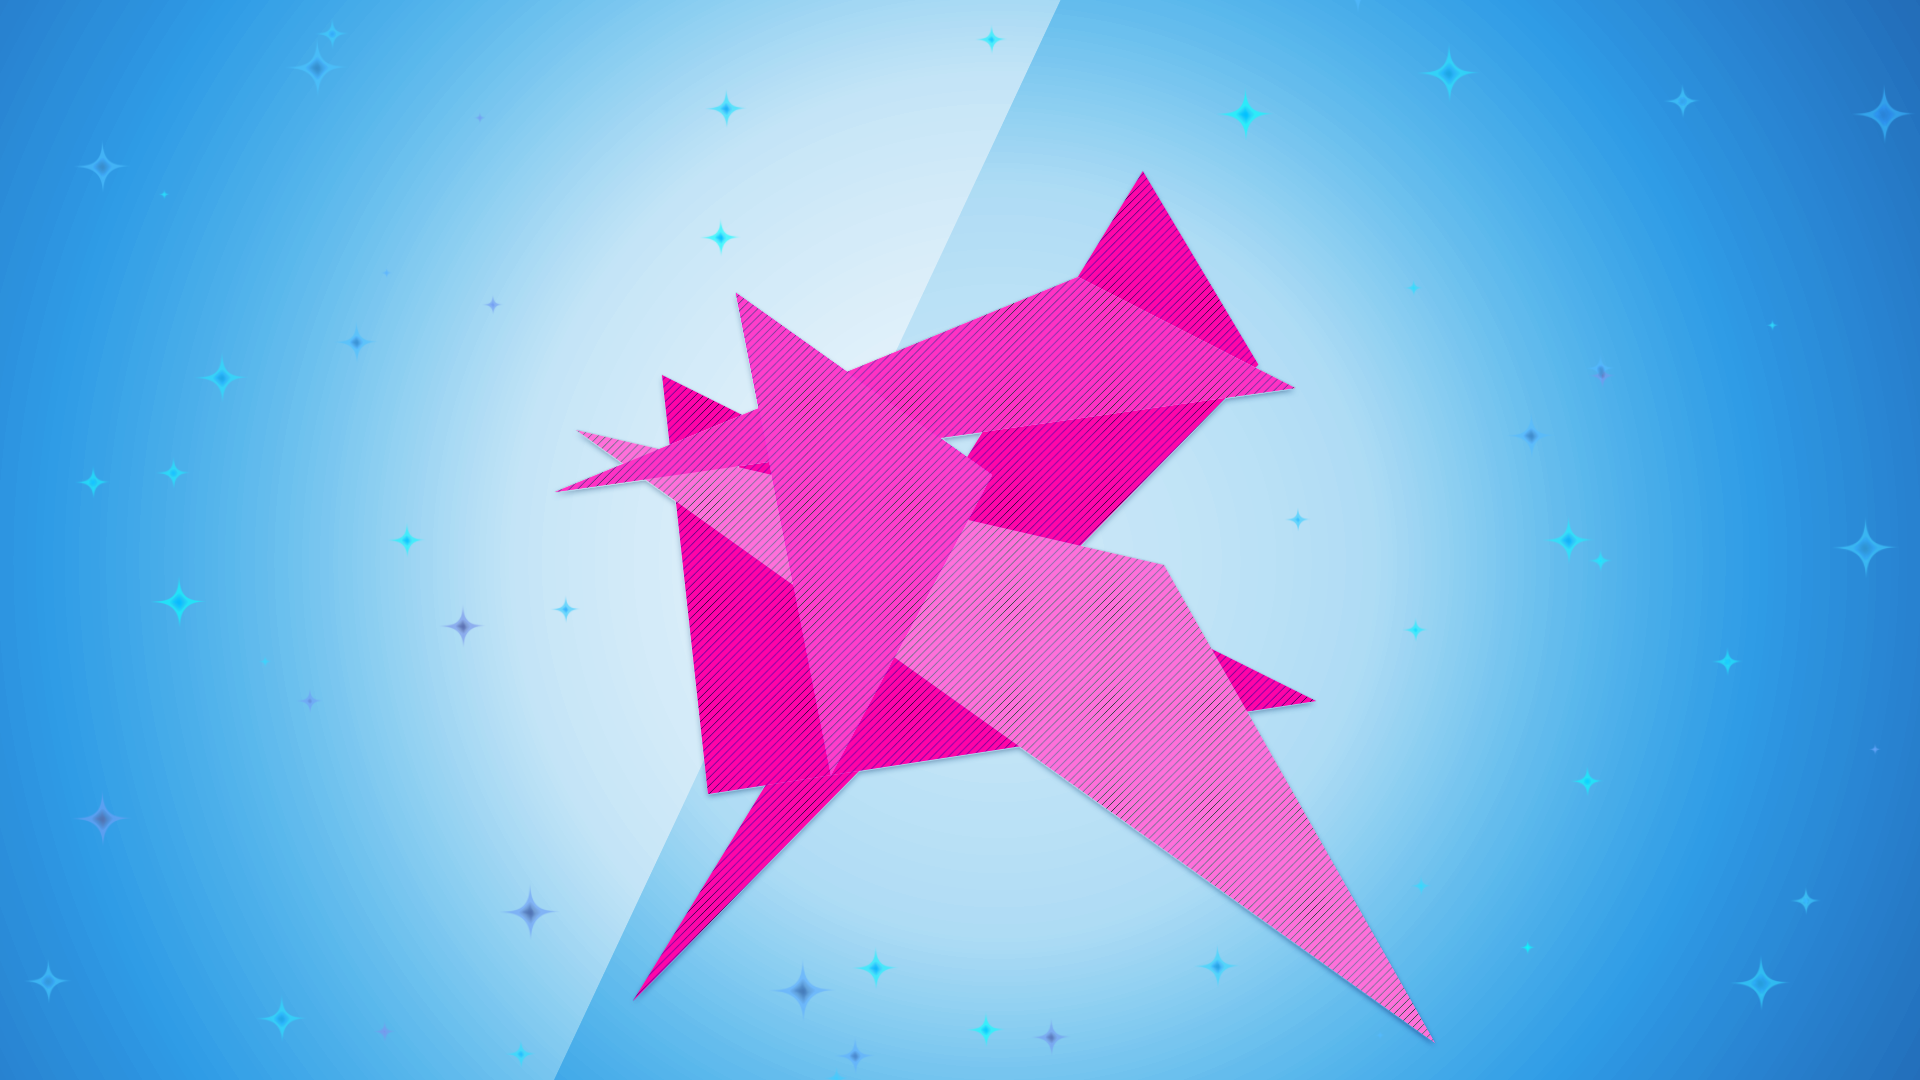 Abstract - Artistic Funny Light Pink Geometry Stars Shapes Origami Wallpaper - Pink Star PNG HD